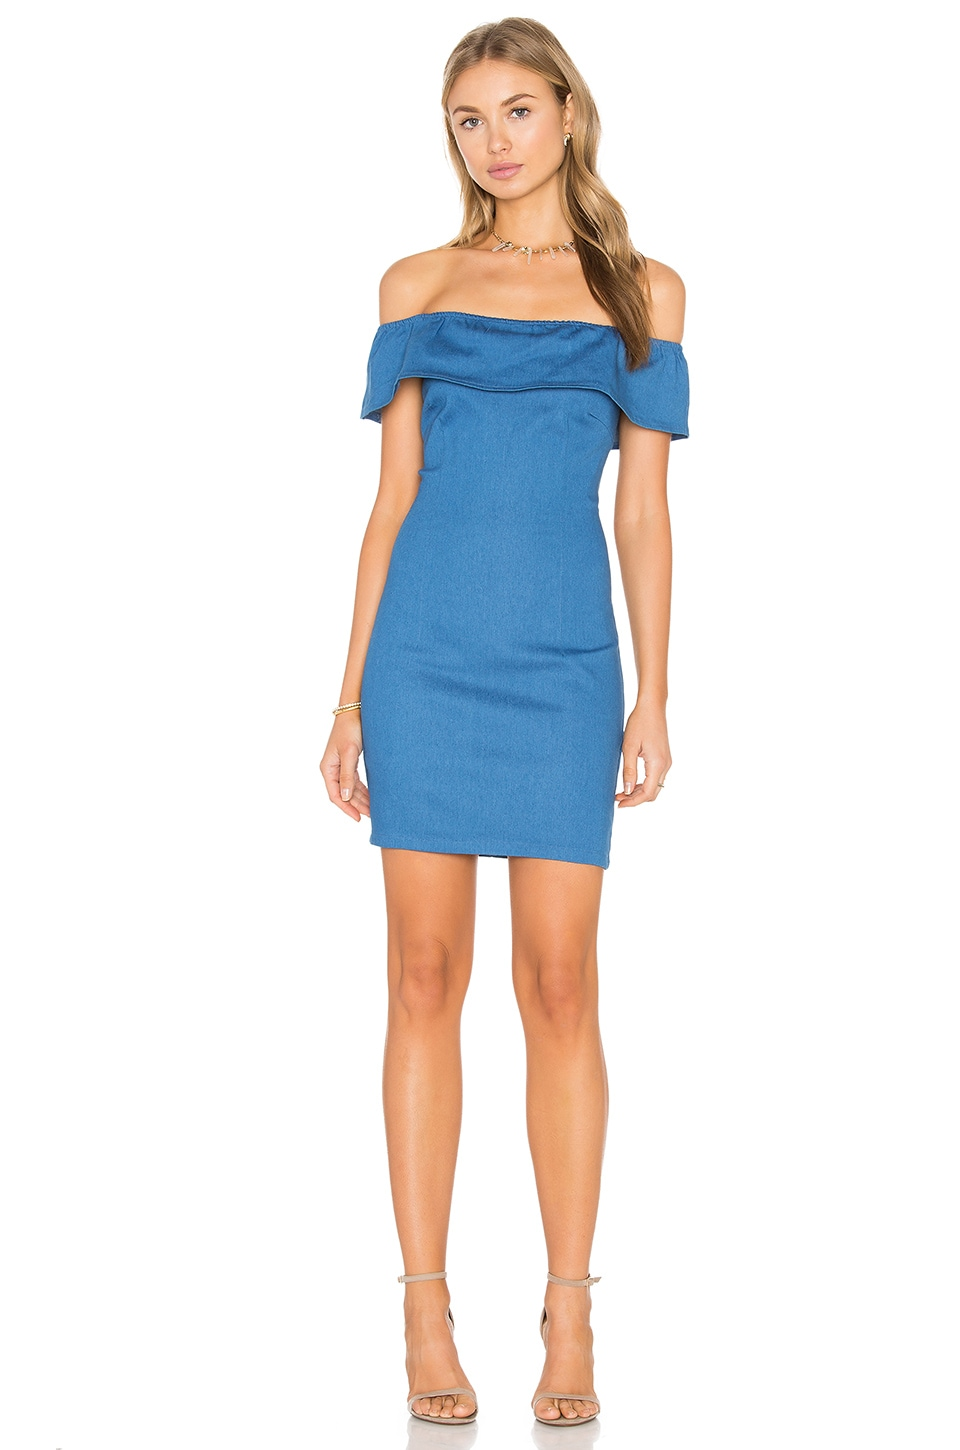 WYLDR Mailey Bodycon Dress in Blue